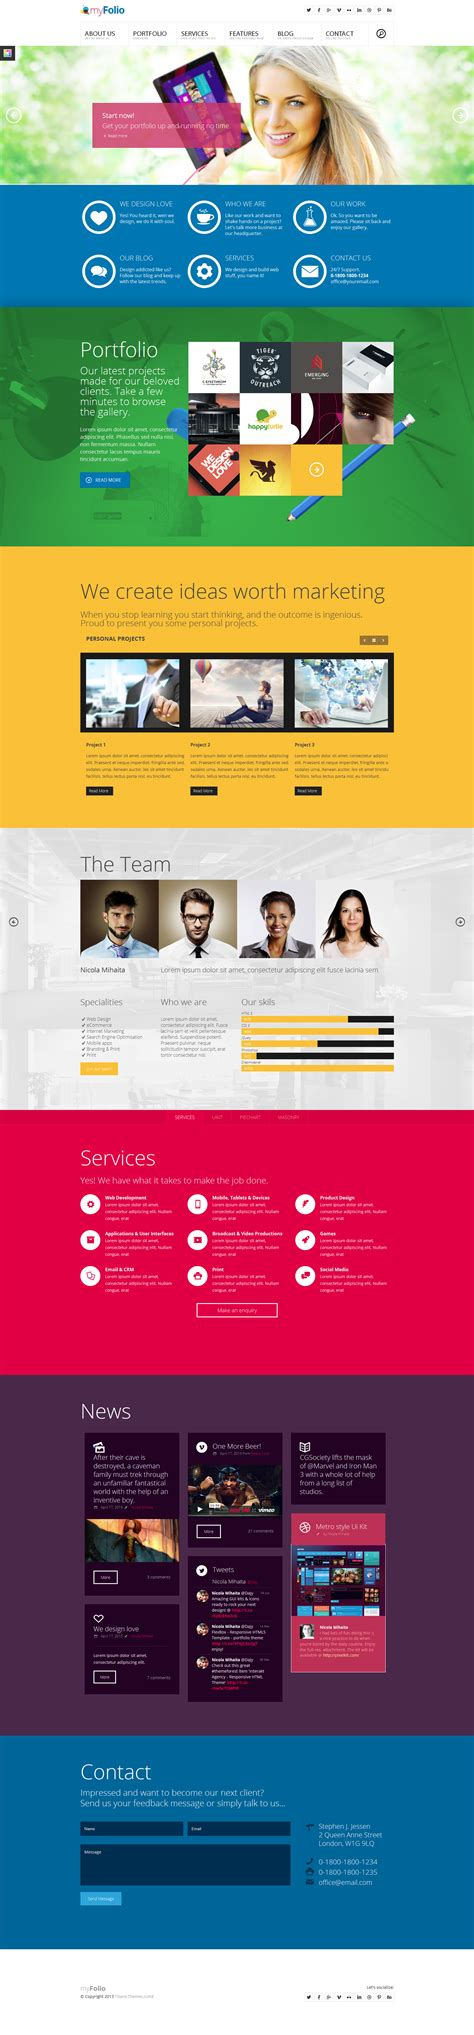 parallax website template myfolio parallax onepage html5 template by dajydesigns on deviantart